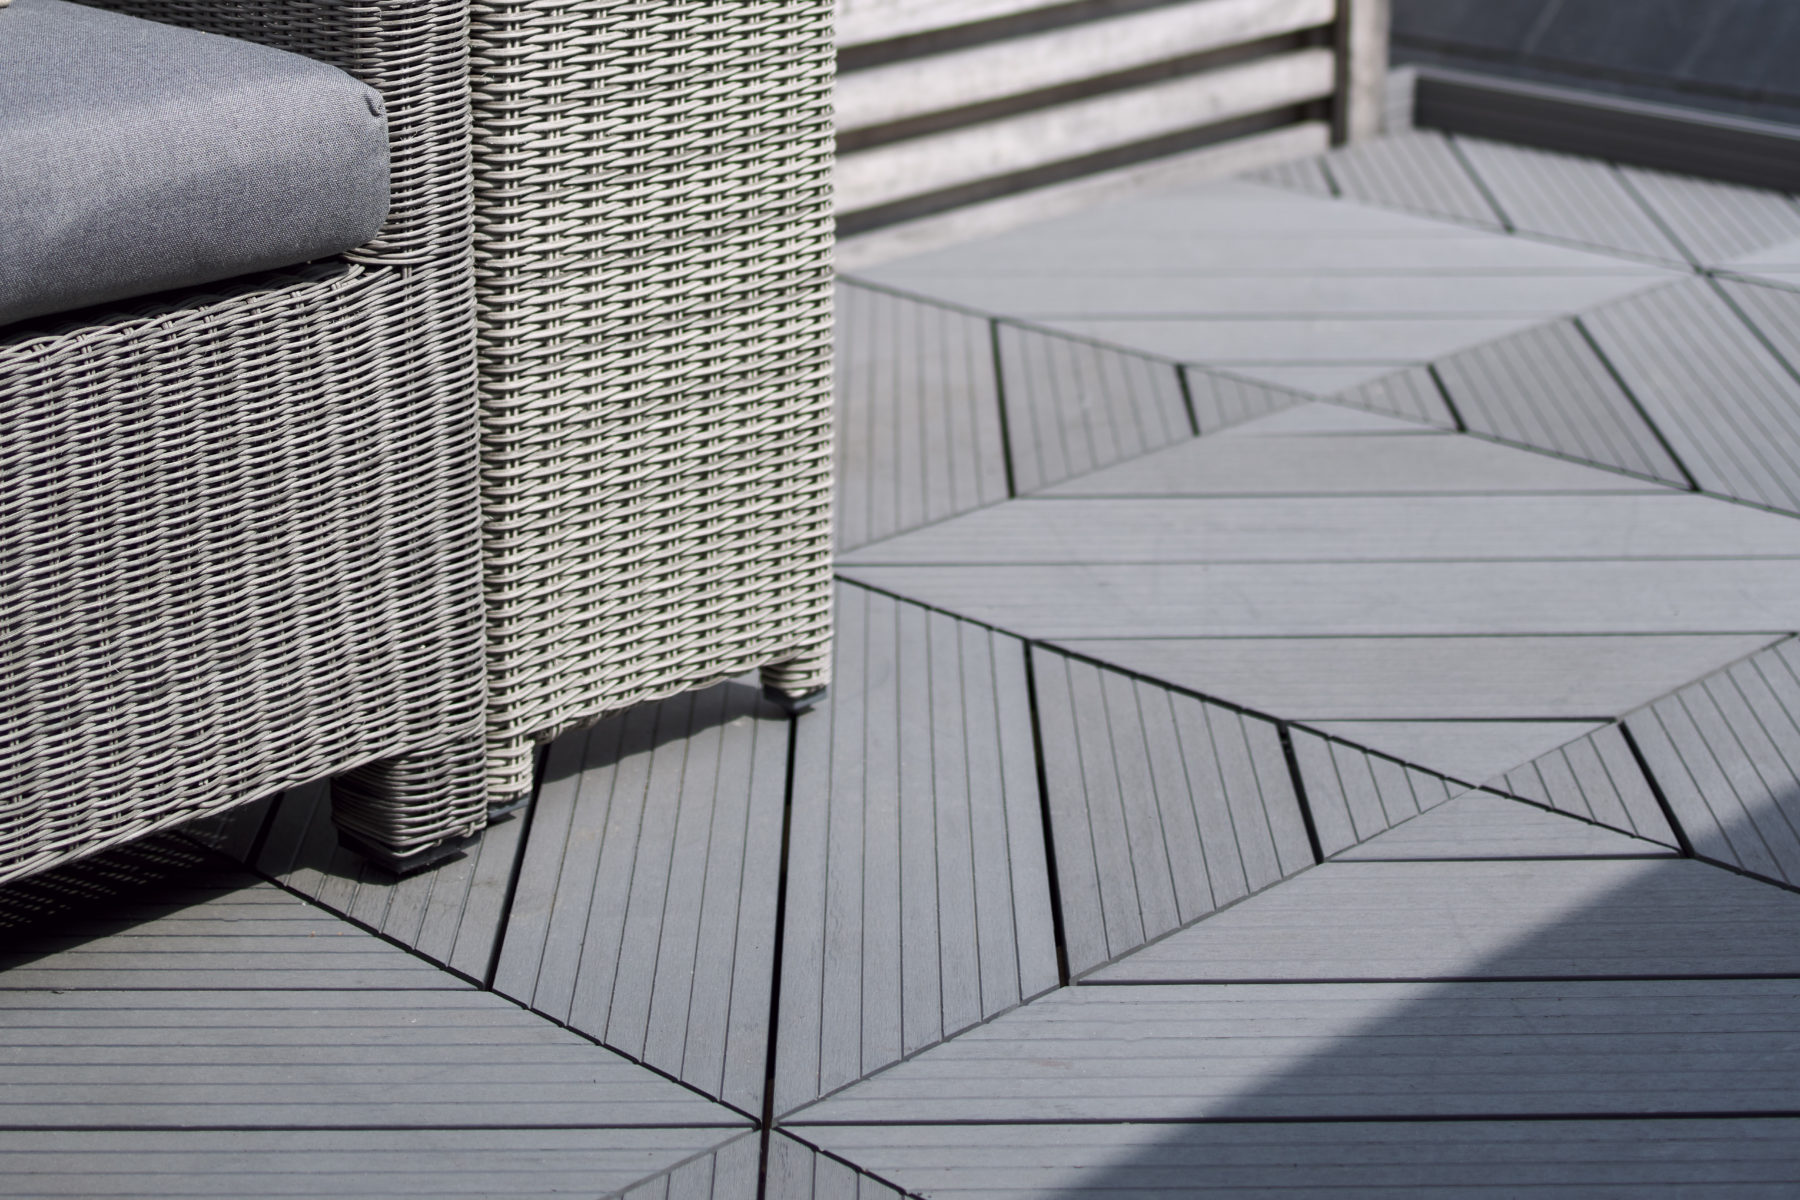 Composite Prime roof terrace decking